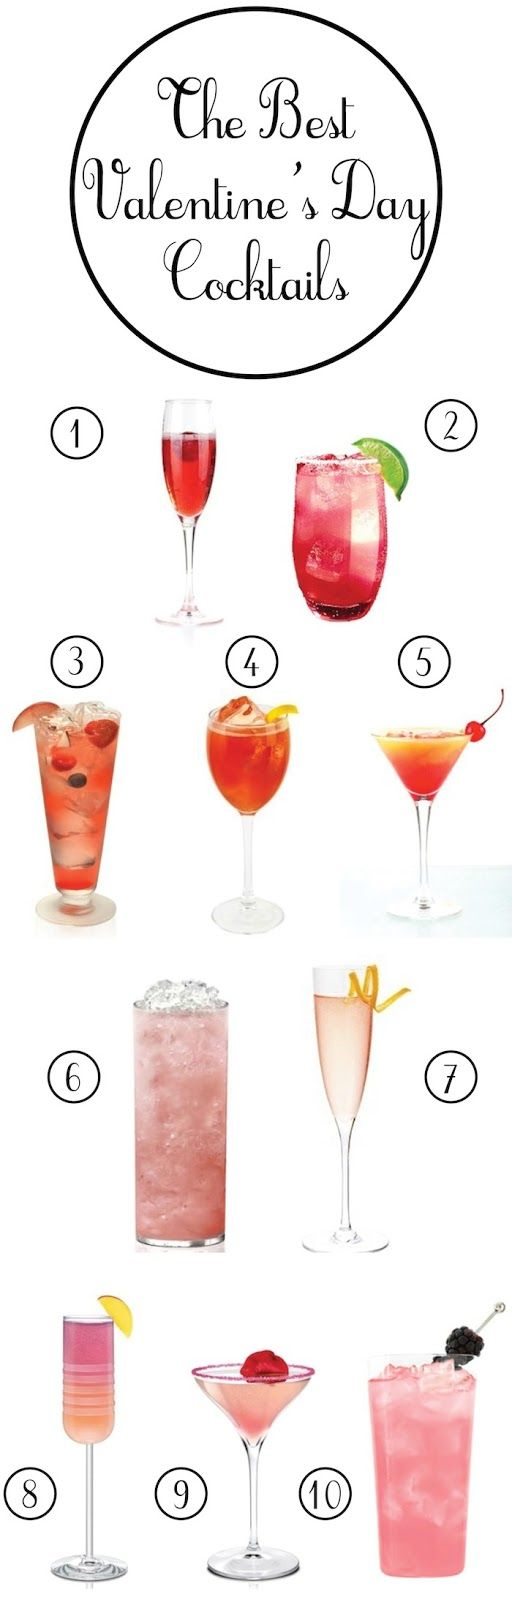 The Best Valentine's Day Cocktails